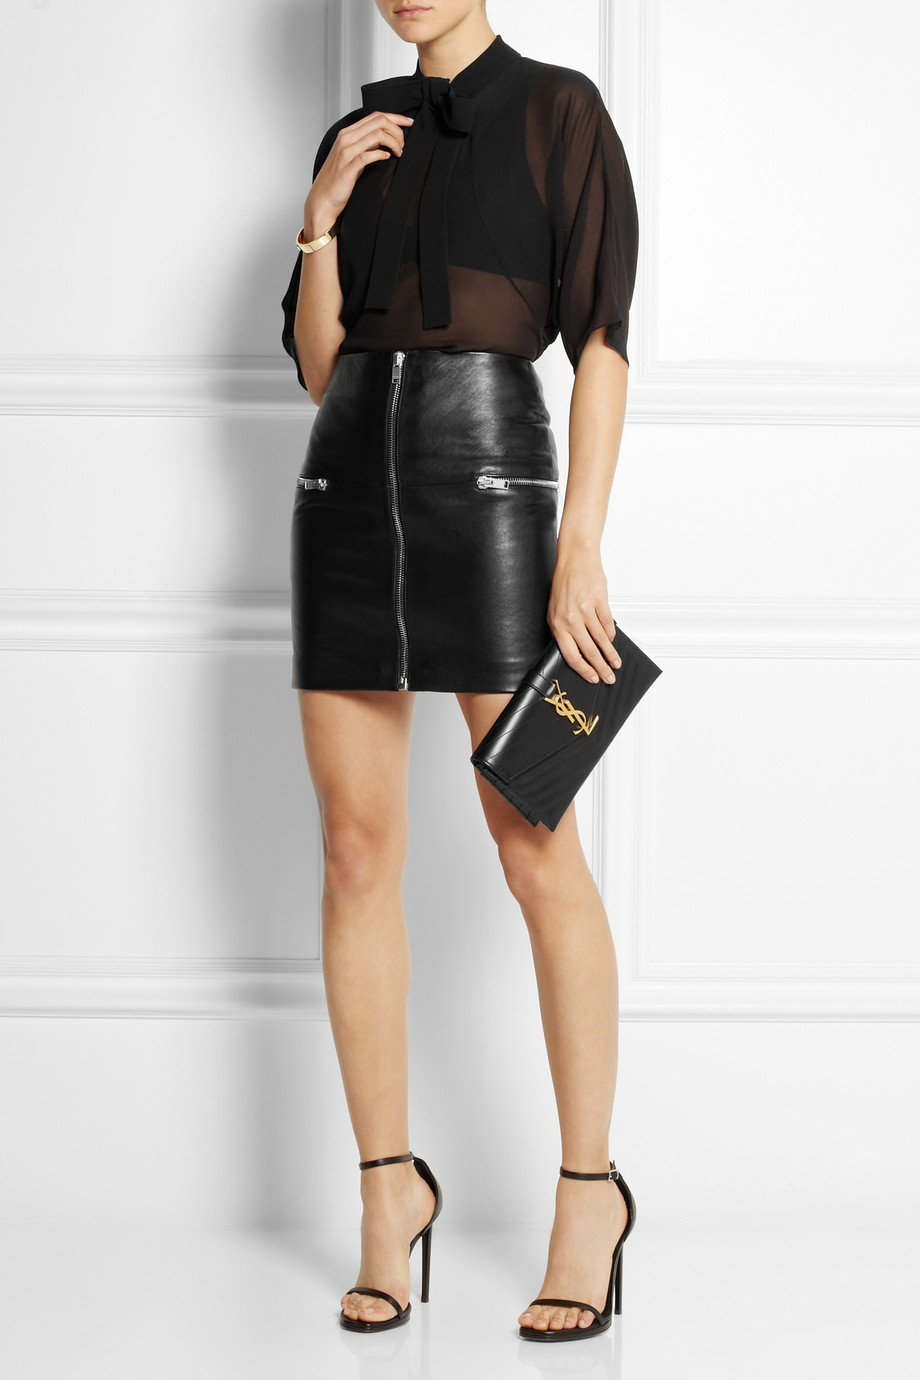 Saint laurent Zip-Trimmed Leather Mini Skirt in Black | Lyst